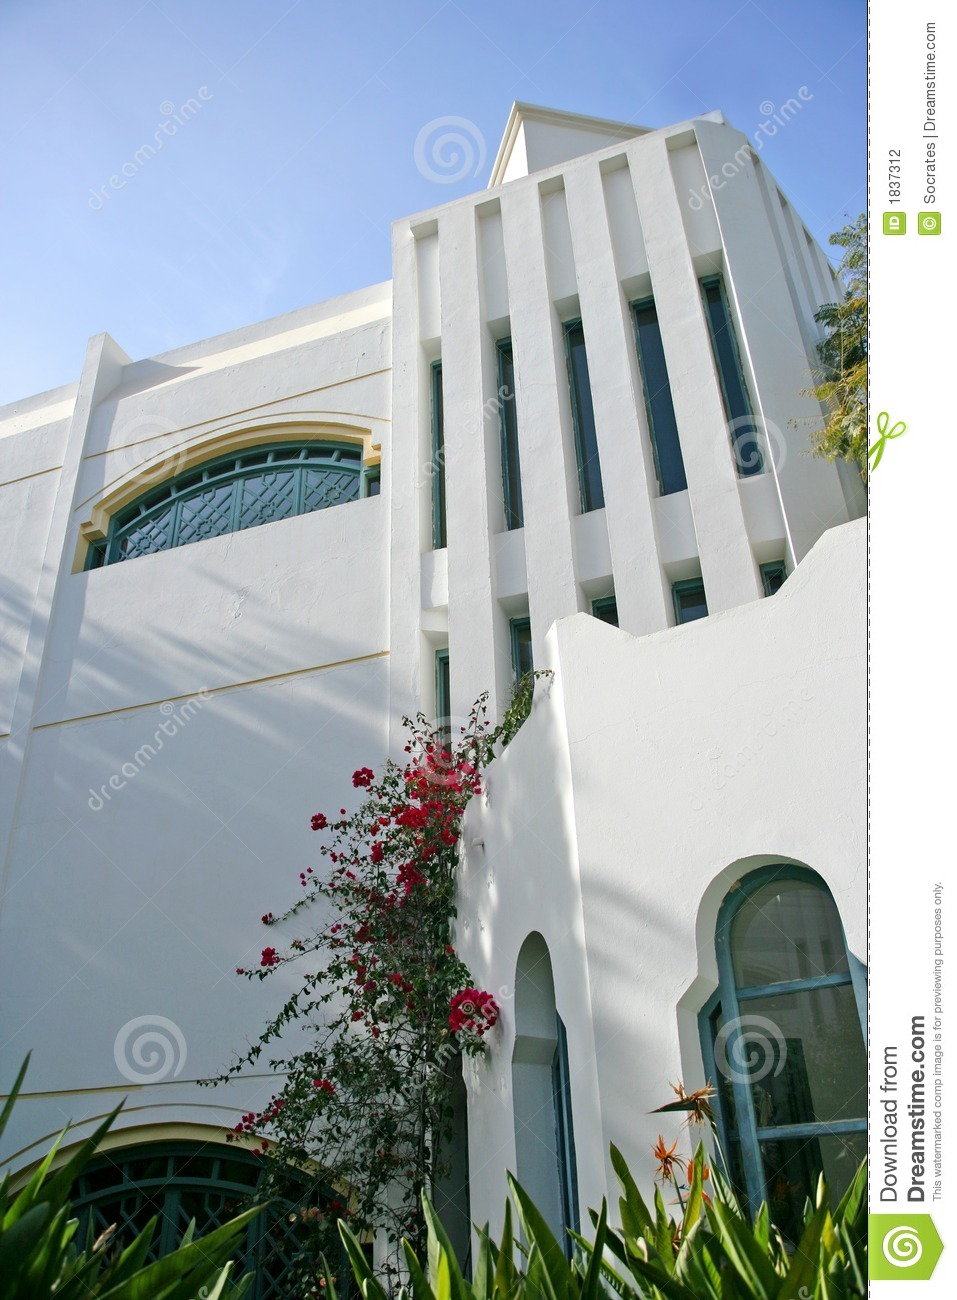 architecture arabe moderne photographie stock image 1837312